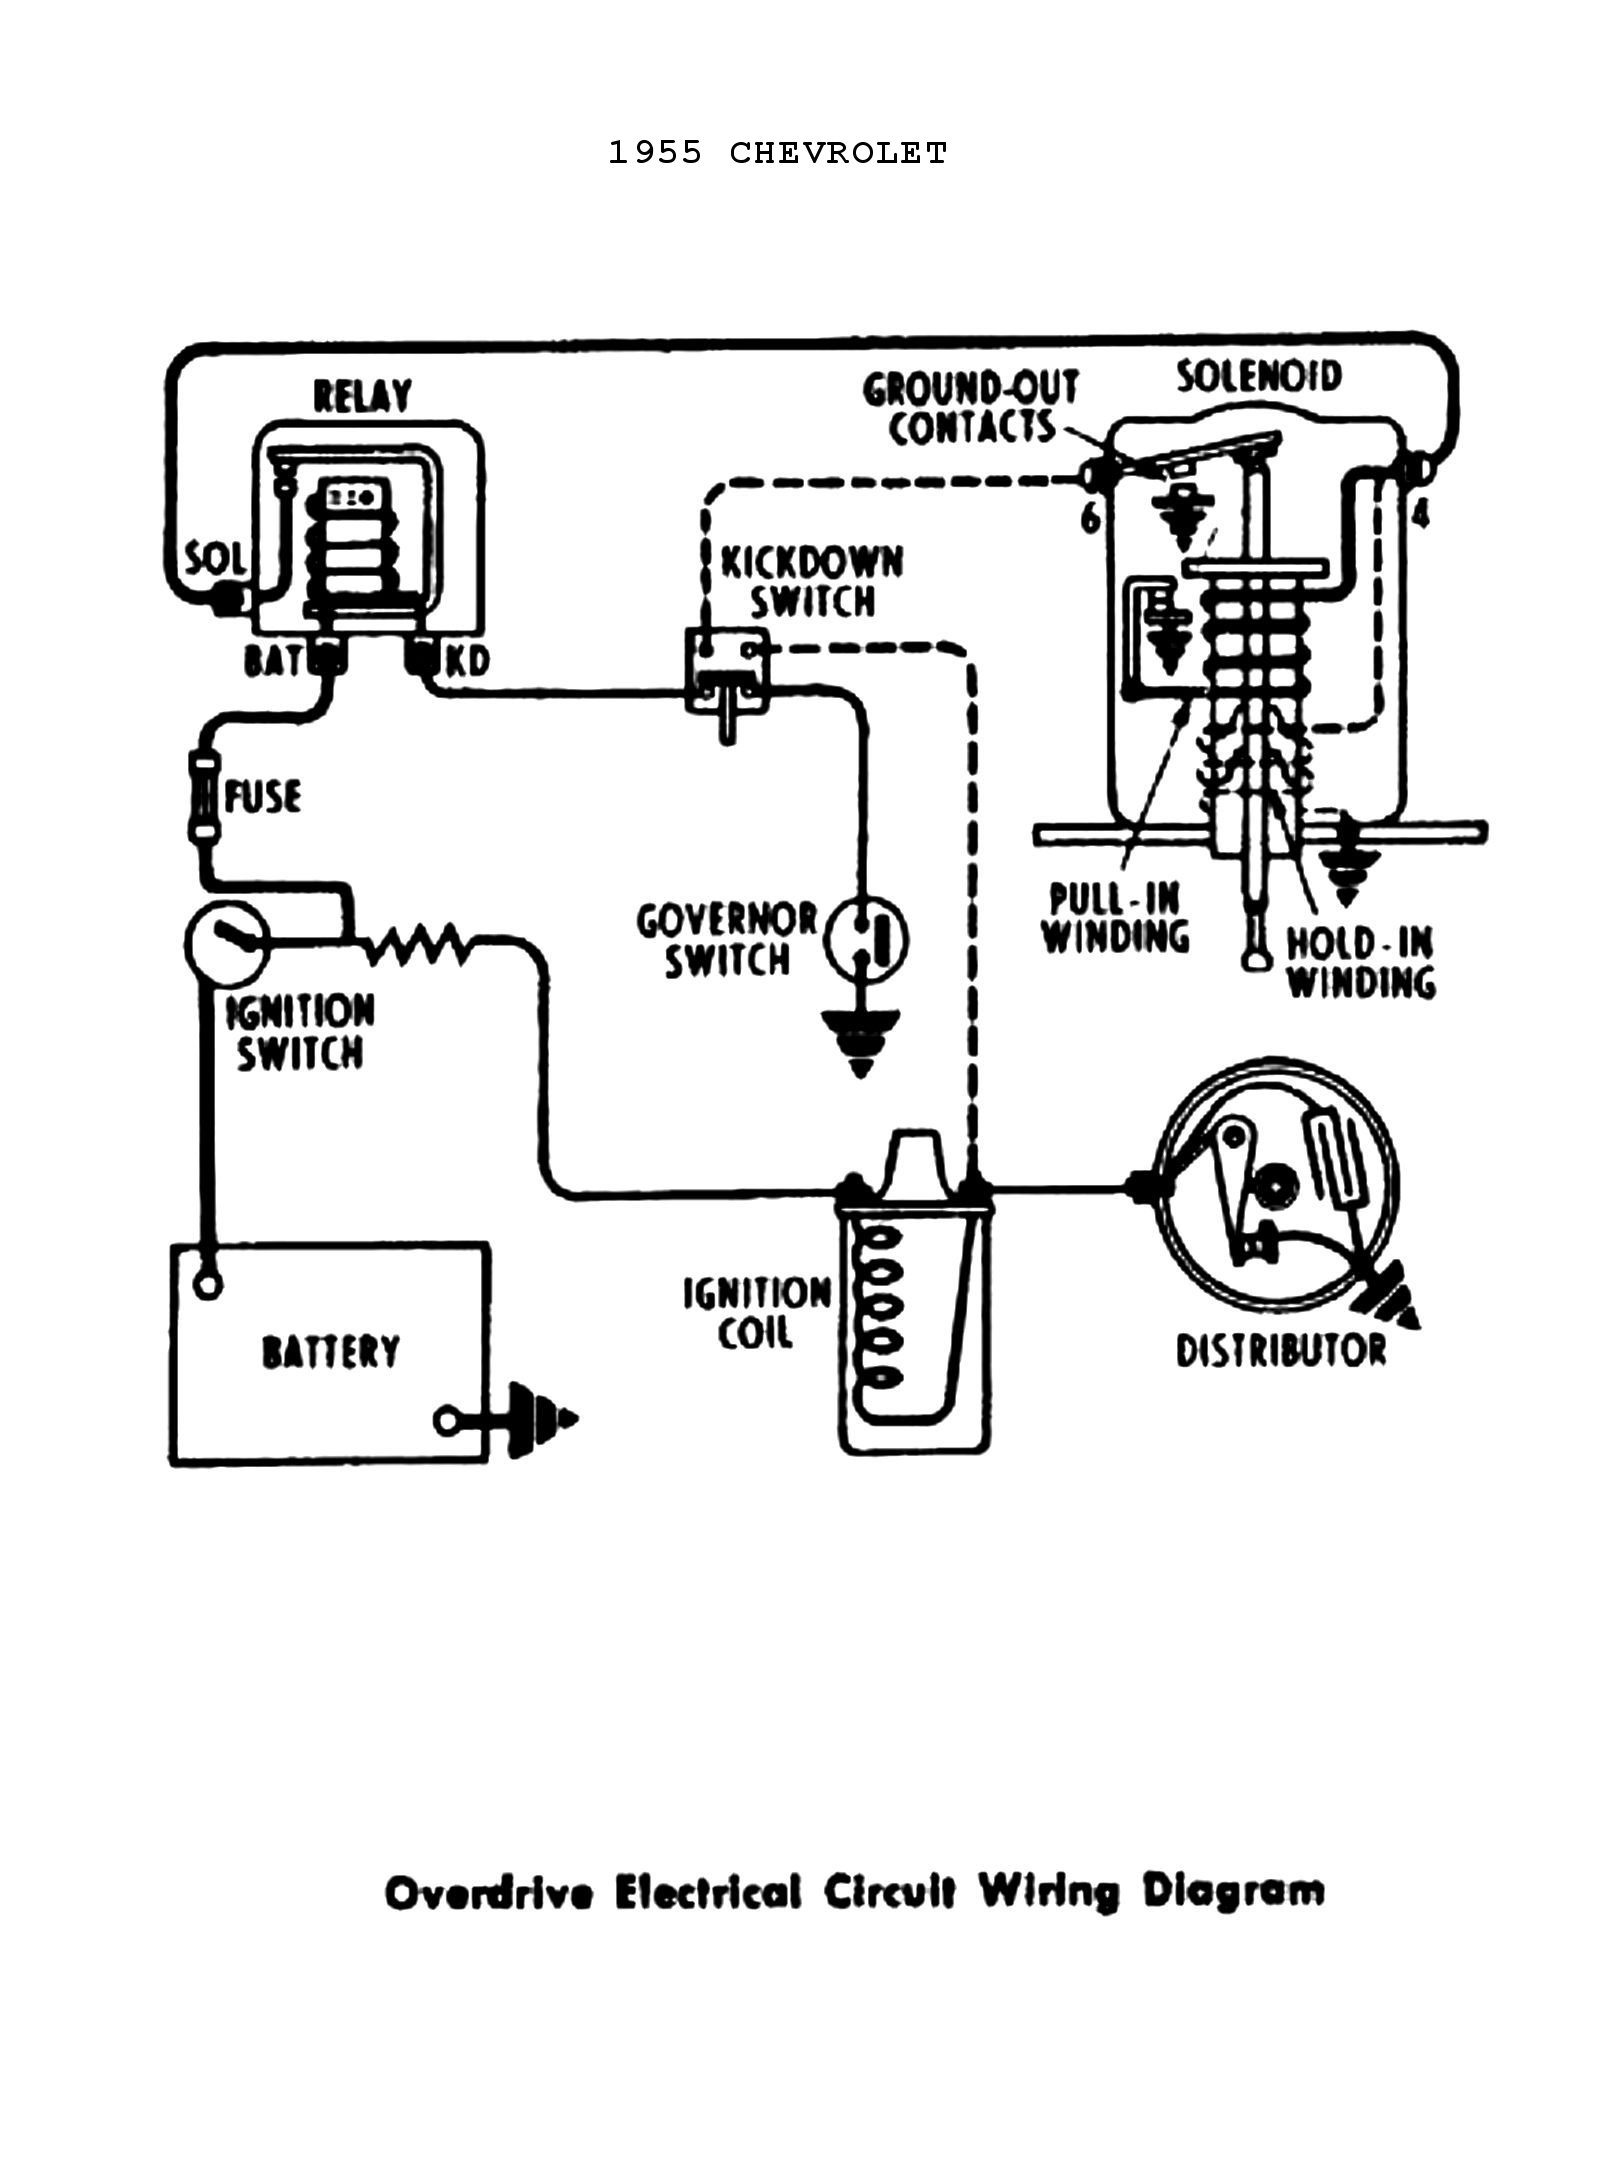 55odtrans1 chevy wiring diagrams,1956 Chevrolet Wiring Schematic